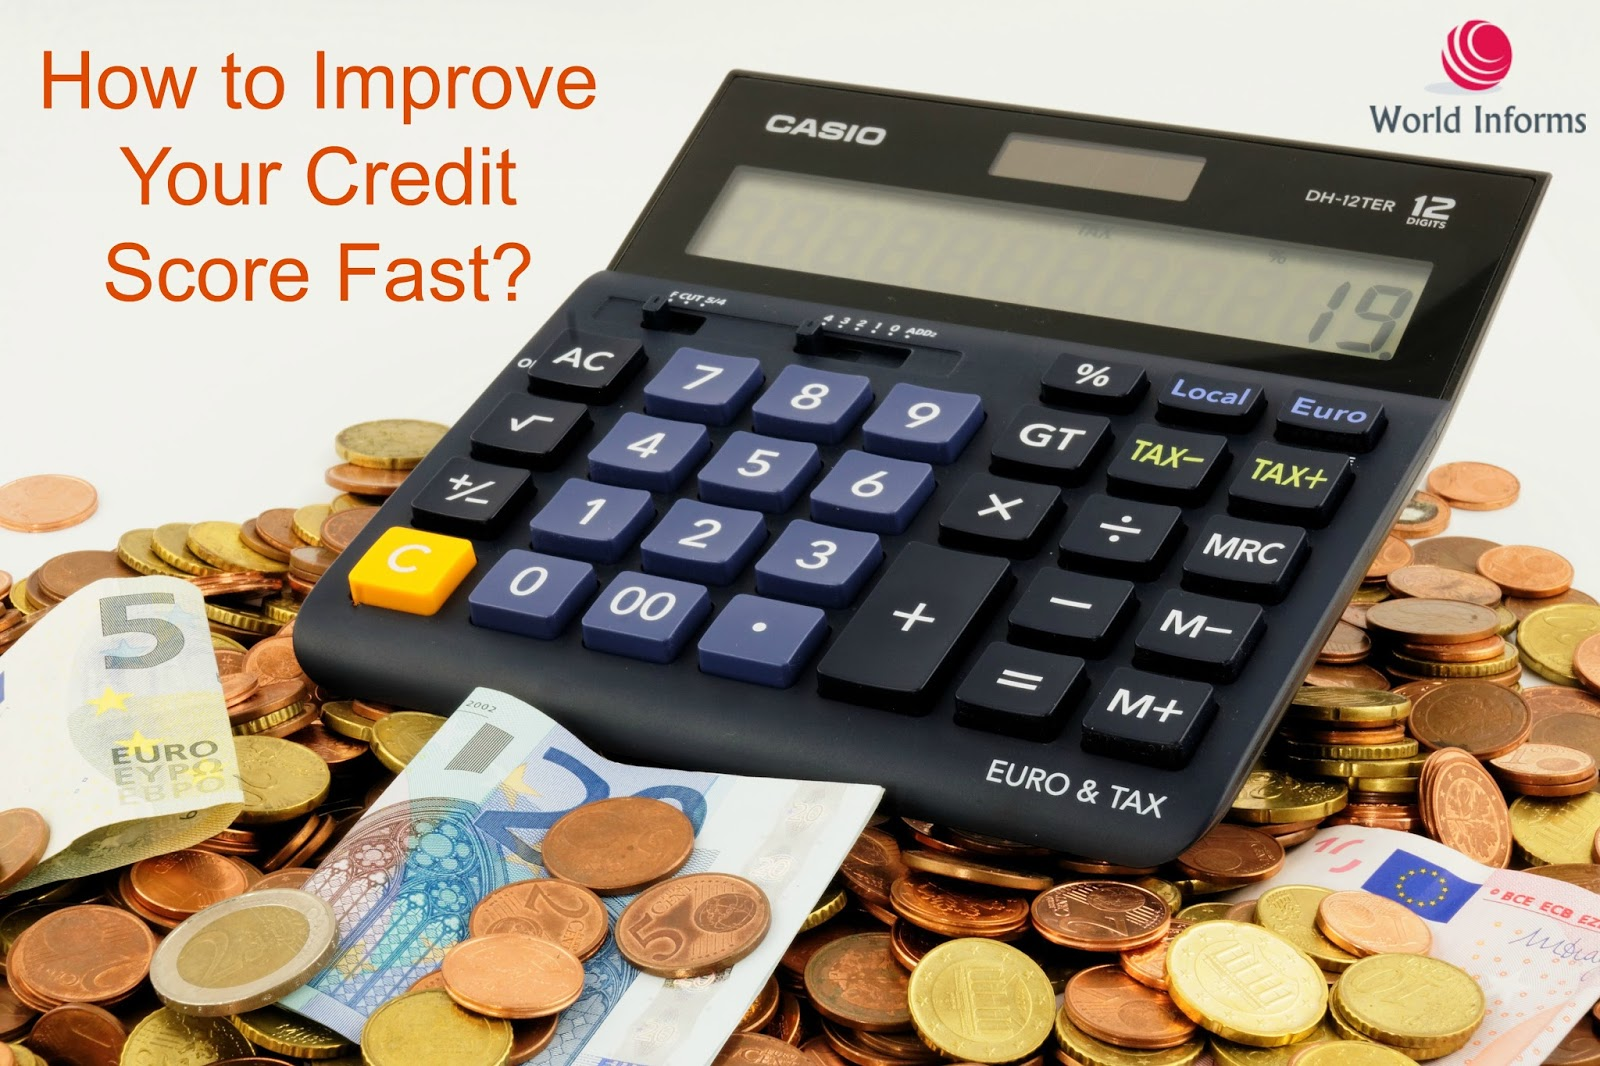 Boosting Business Credit Score Appleshooterz  Howtoimproveyourcreditscorefast How To Improve Your Credit Score Fast?  Worldrms